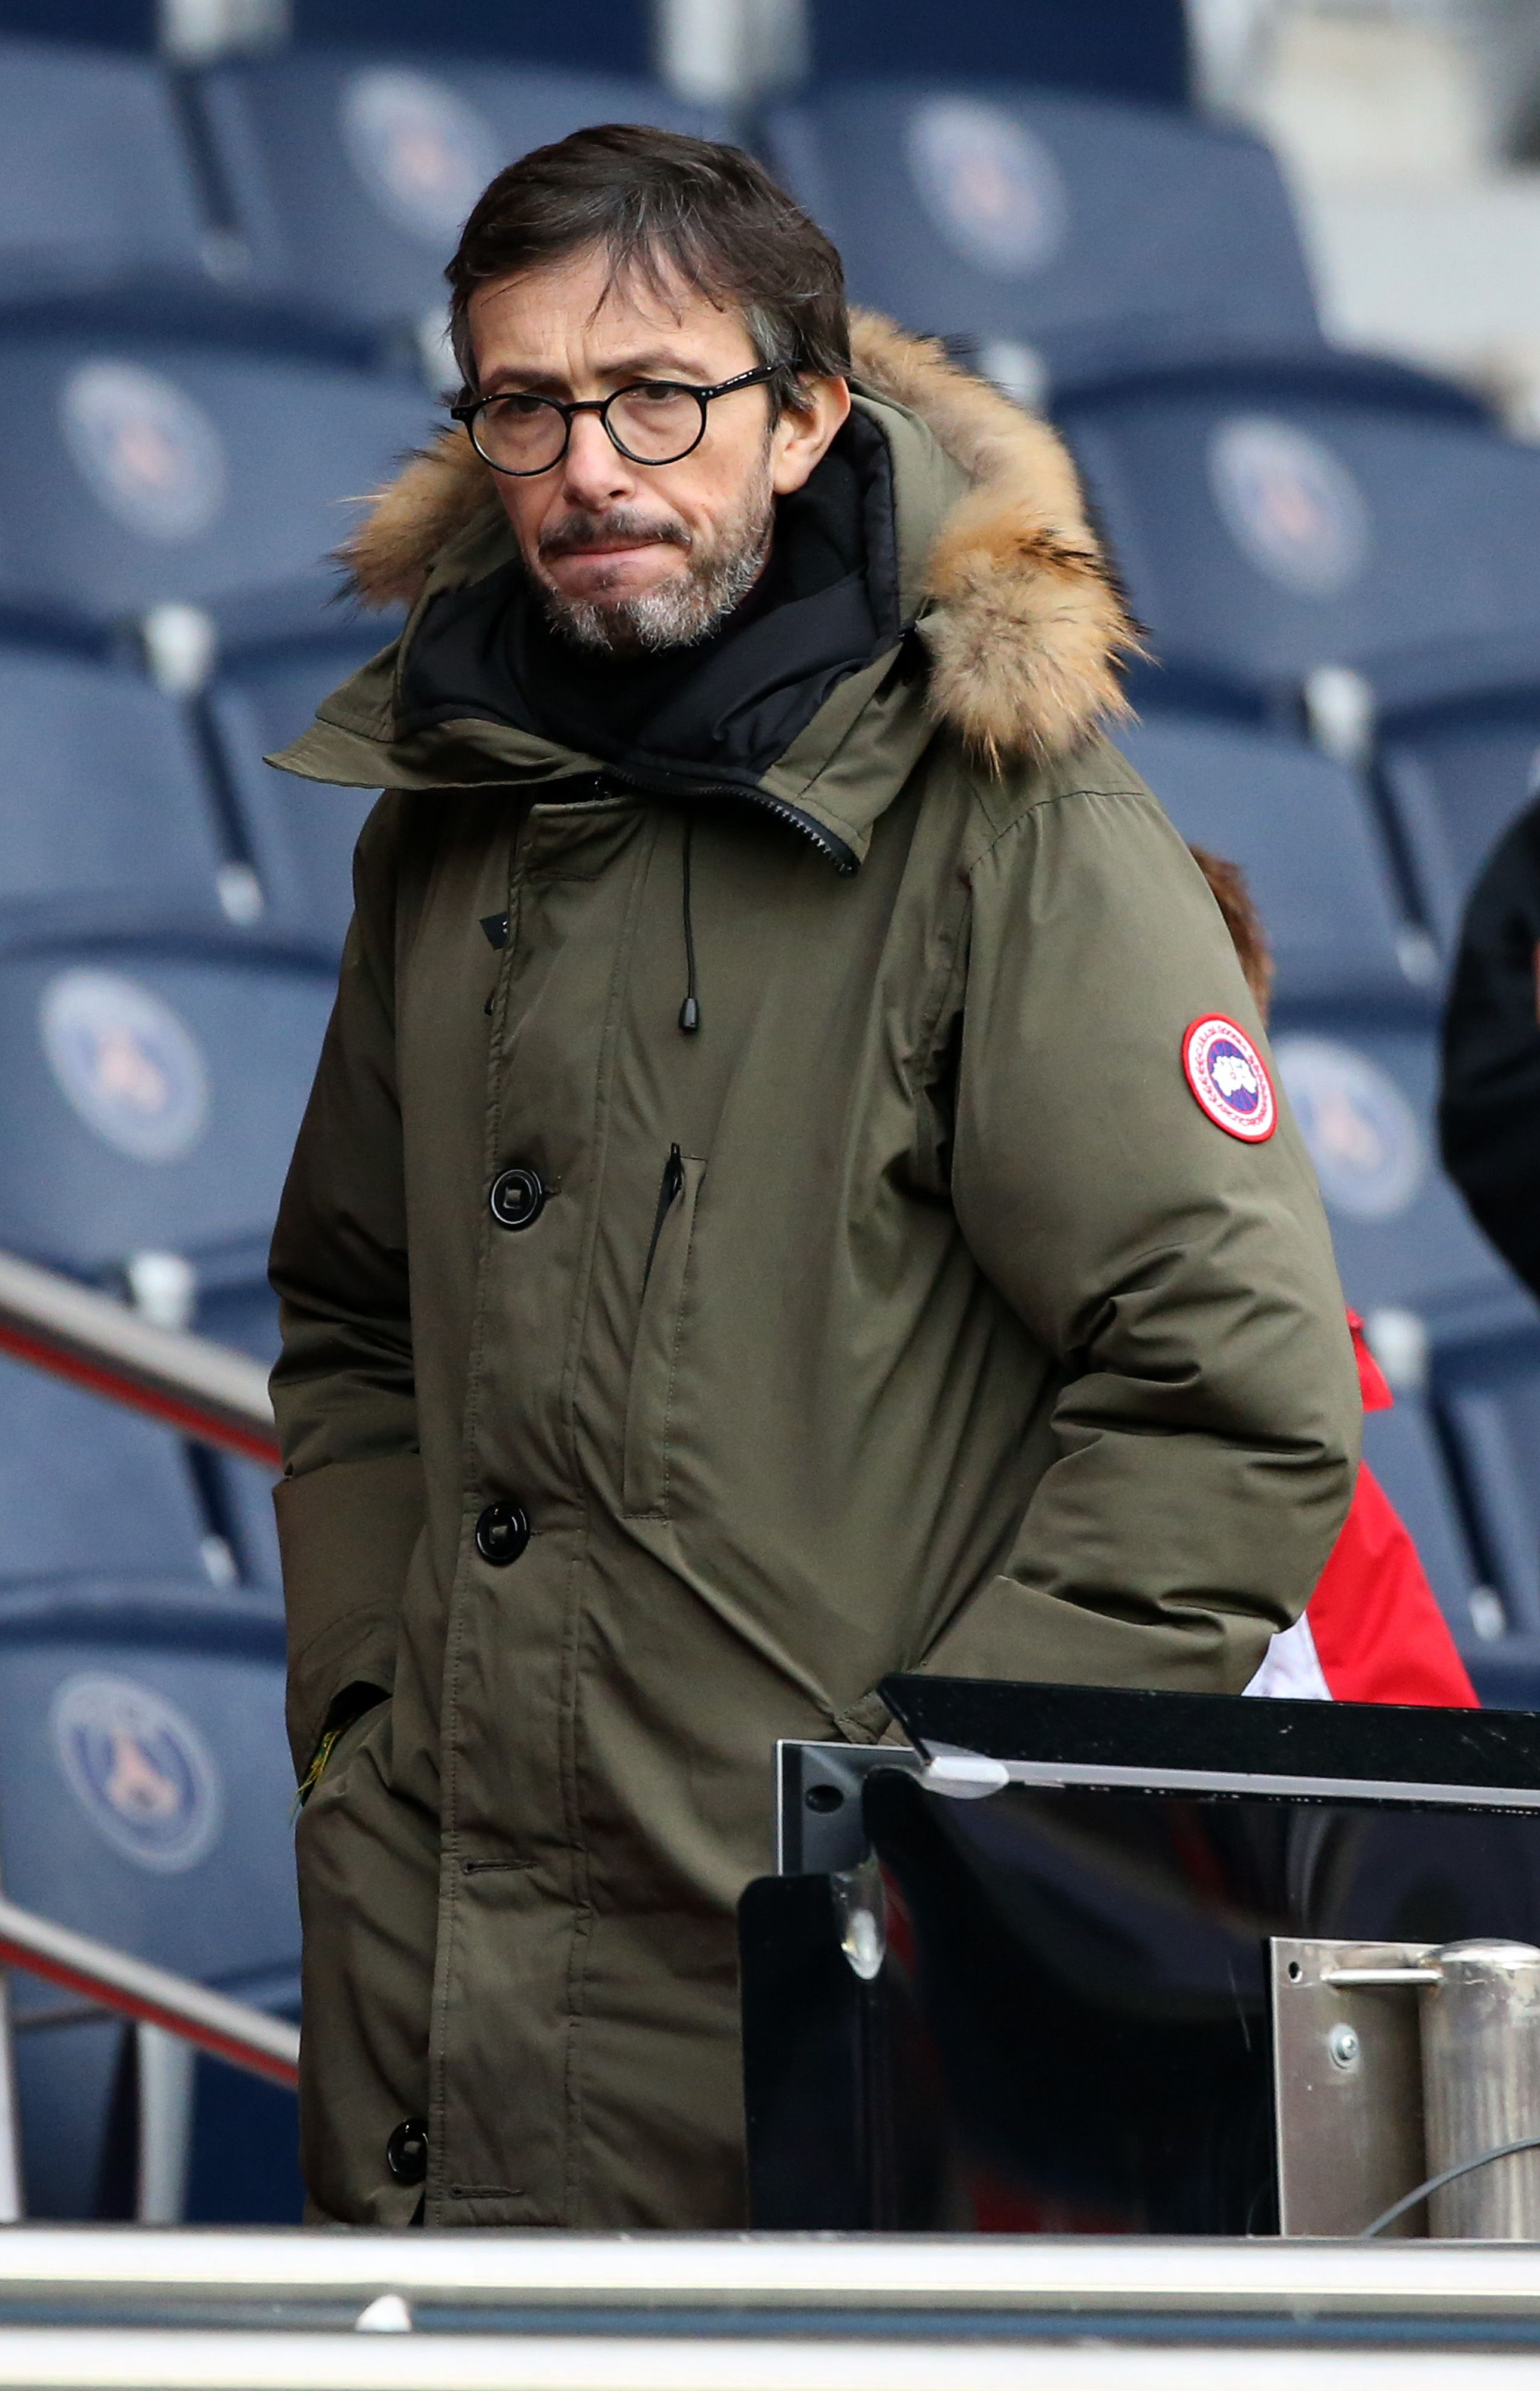 Florian Gazan assiste au match de Ligue 1 entre le Paris Saint Germain (PSG) et l'AS Nancy Lorraine (ASNL) au Parc des Princes le 4 mars 2017 à Paris, France. | Photo : Getty Images